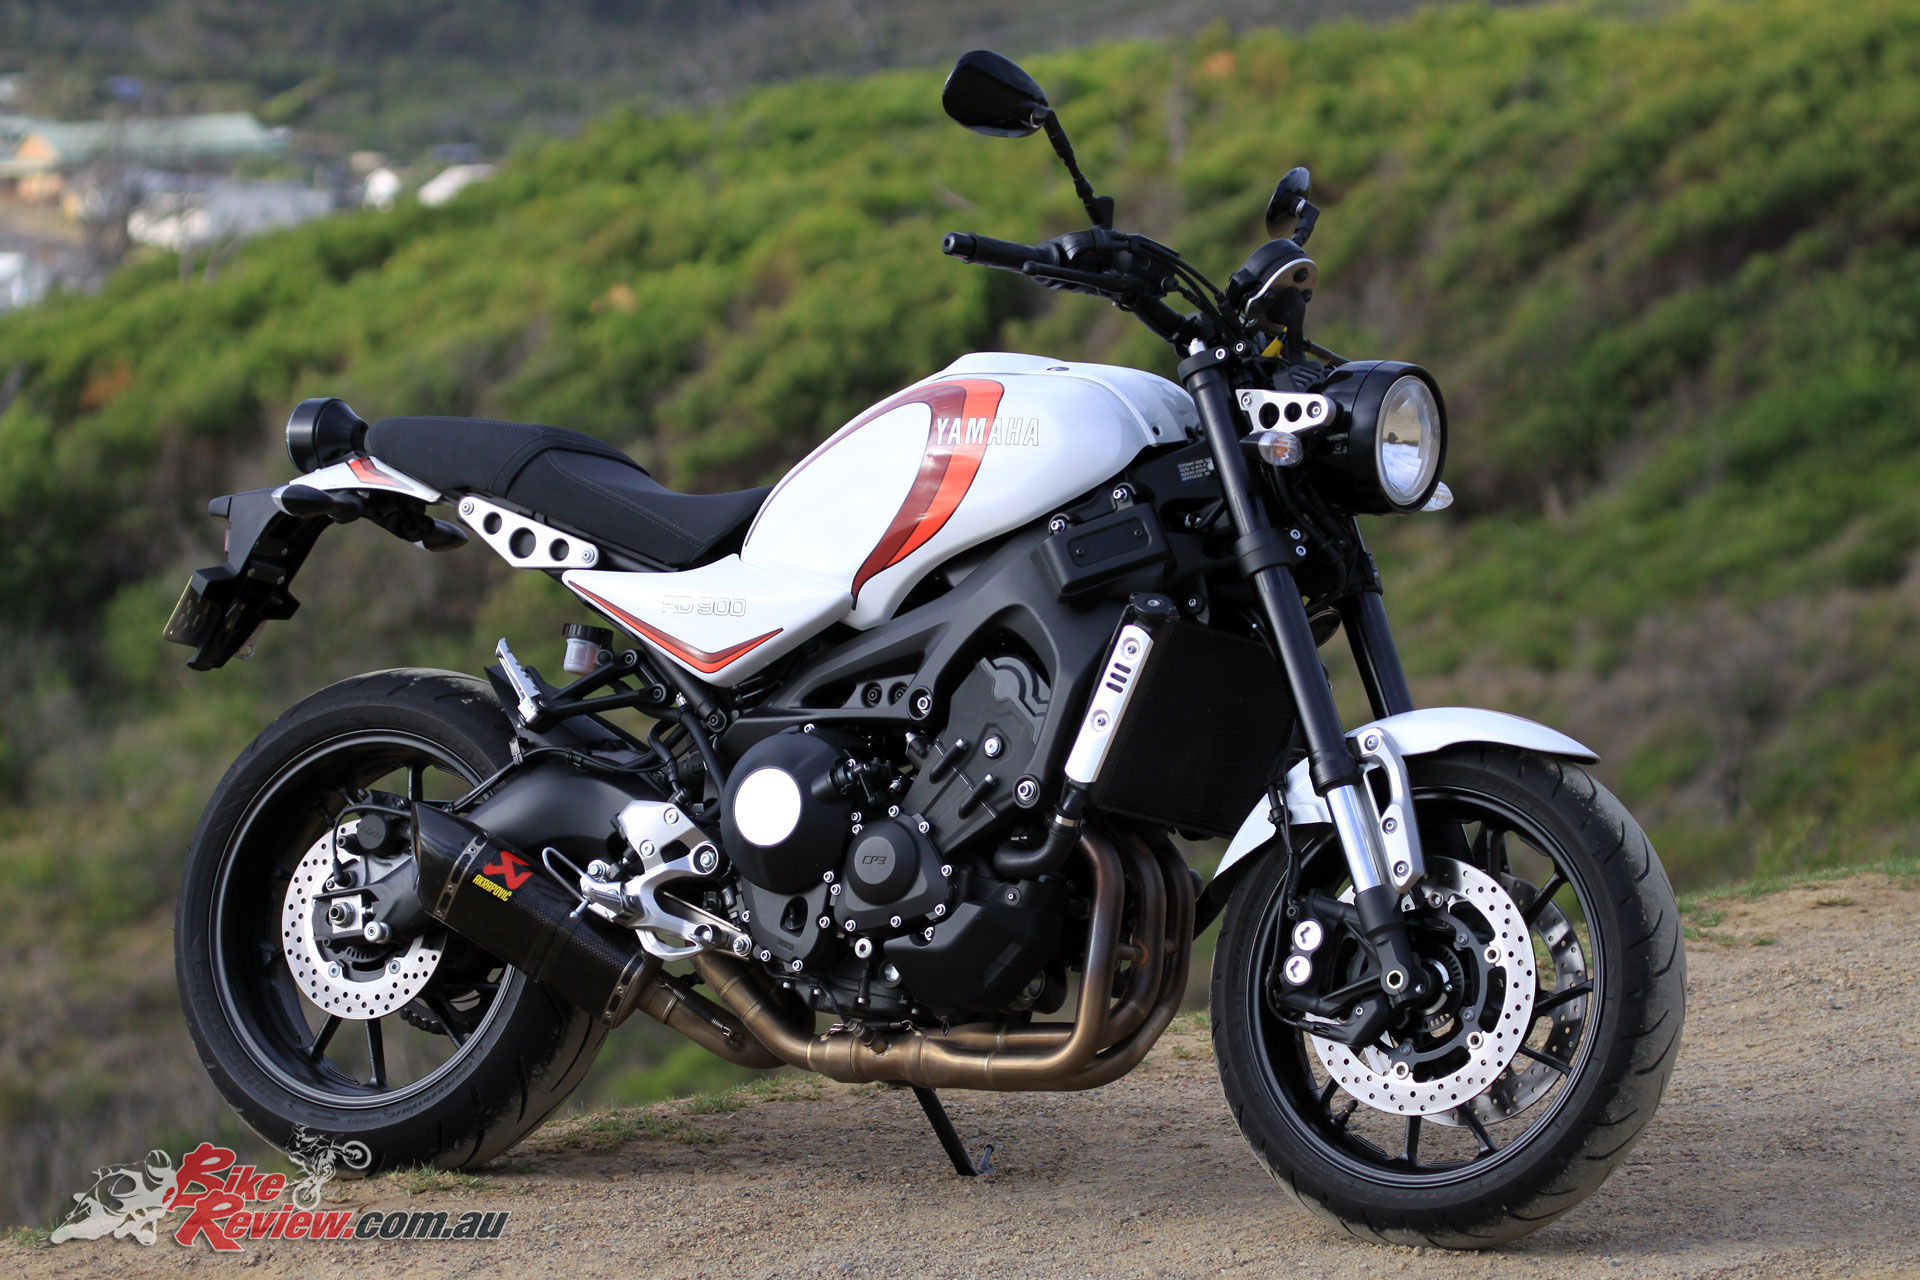 The previously tested 'RD' styled XSR900 also from Yamaha, fitted with an Akrapovic exhaust